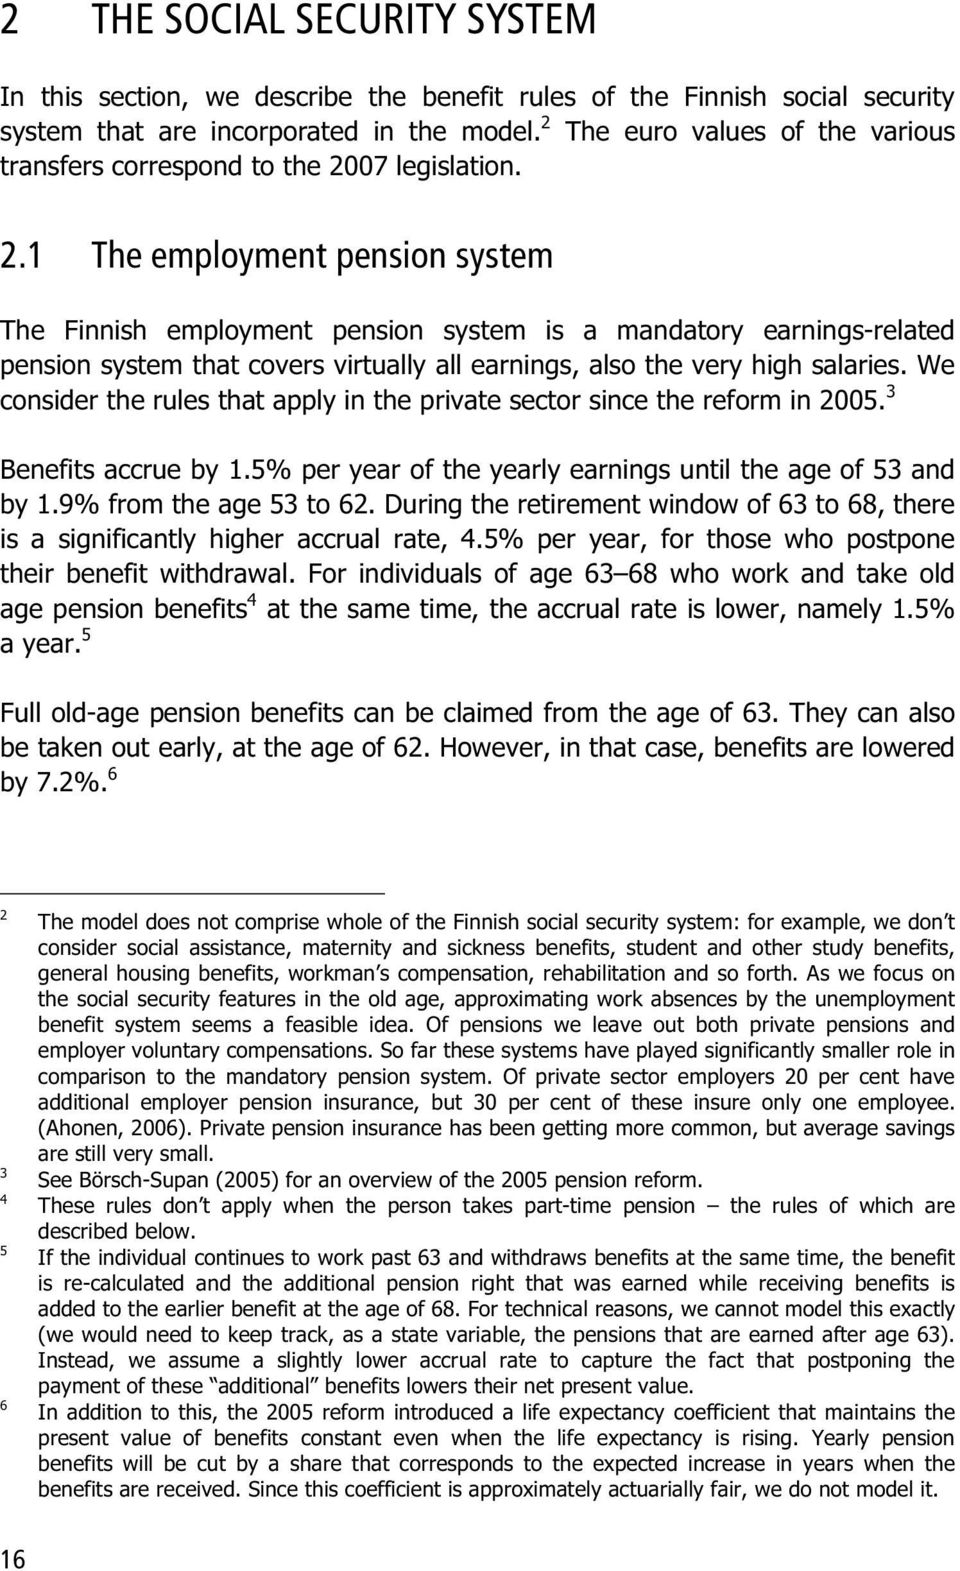 07 legislation. 2.1 The employment pension system The Finnish employment pension system is a mandatory earnings-related pension system that covers virtually all earnings, also the very high salaries.